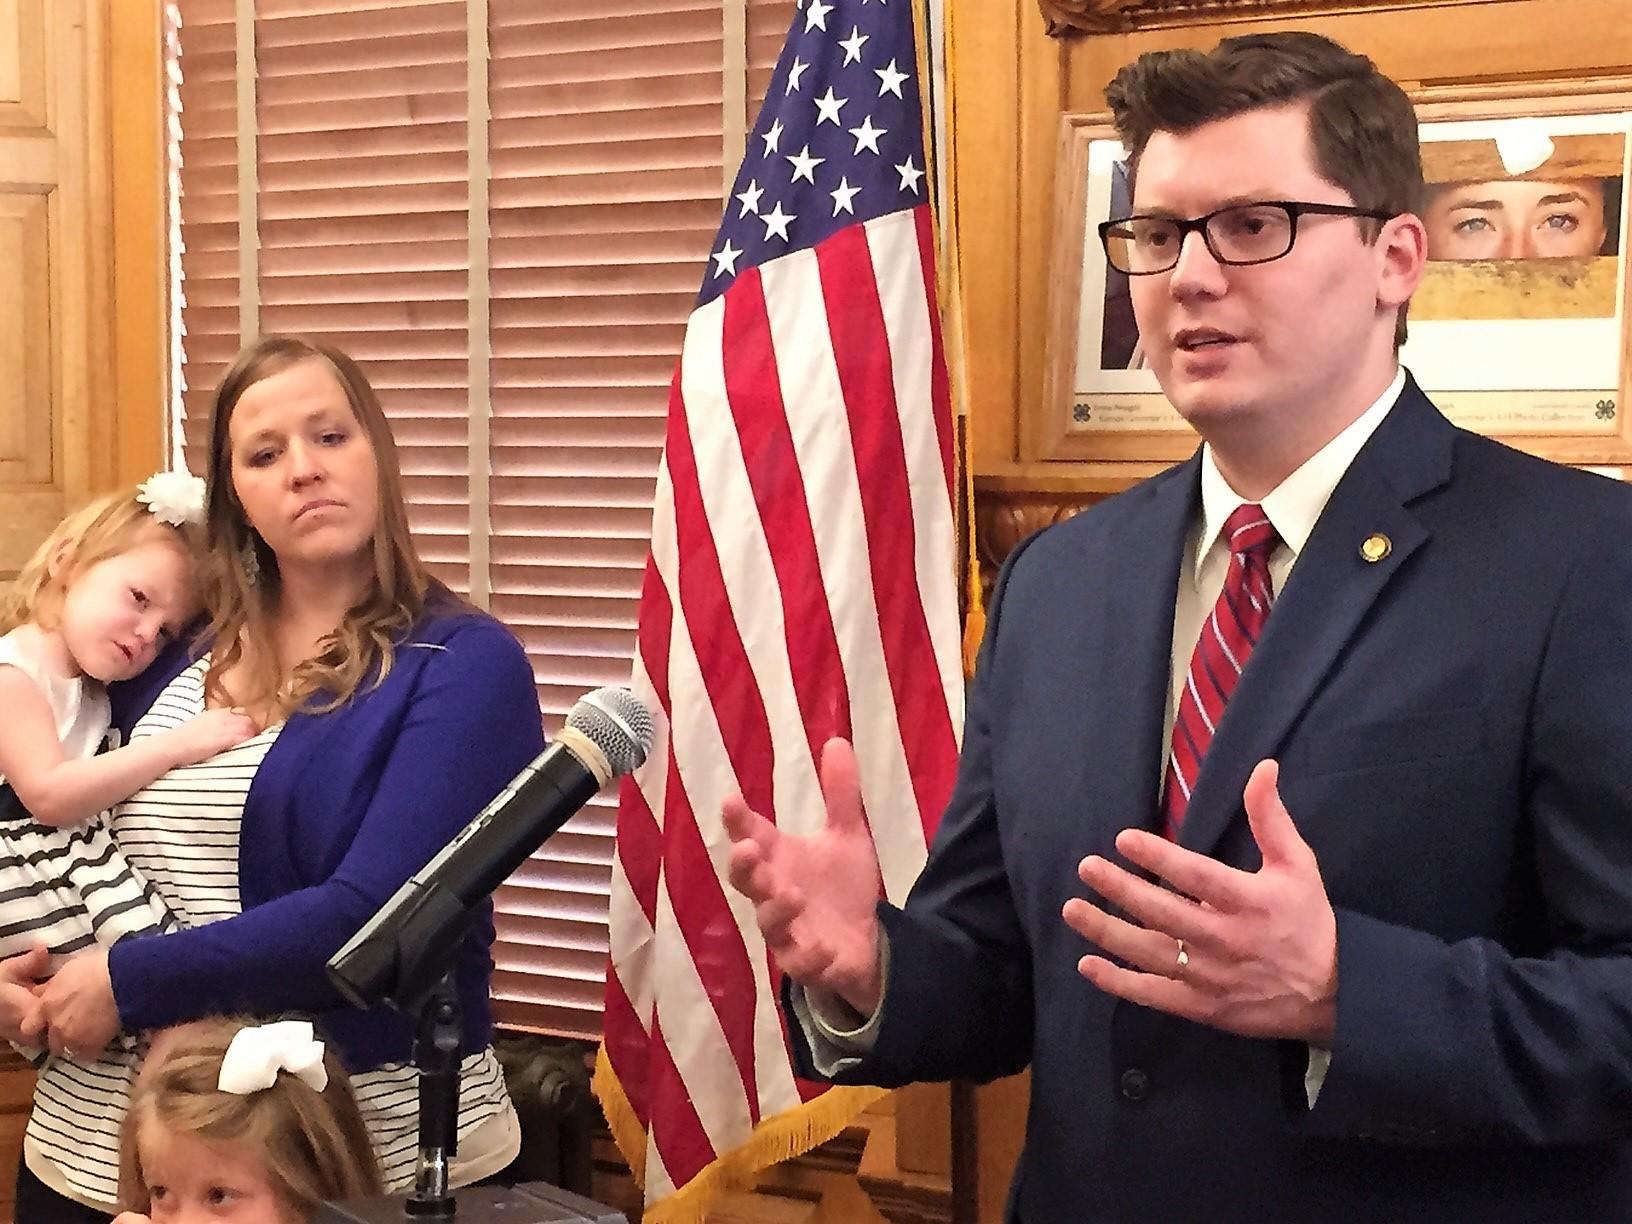 Kansas Treasurer Jake LaTurner is leaving the U.S. Senate race to challenge the 2nd Congressional District incumbent Steve Watkins. (Photo by Jim McLean)